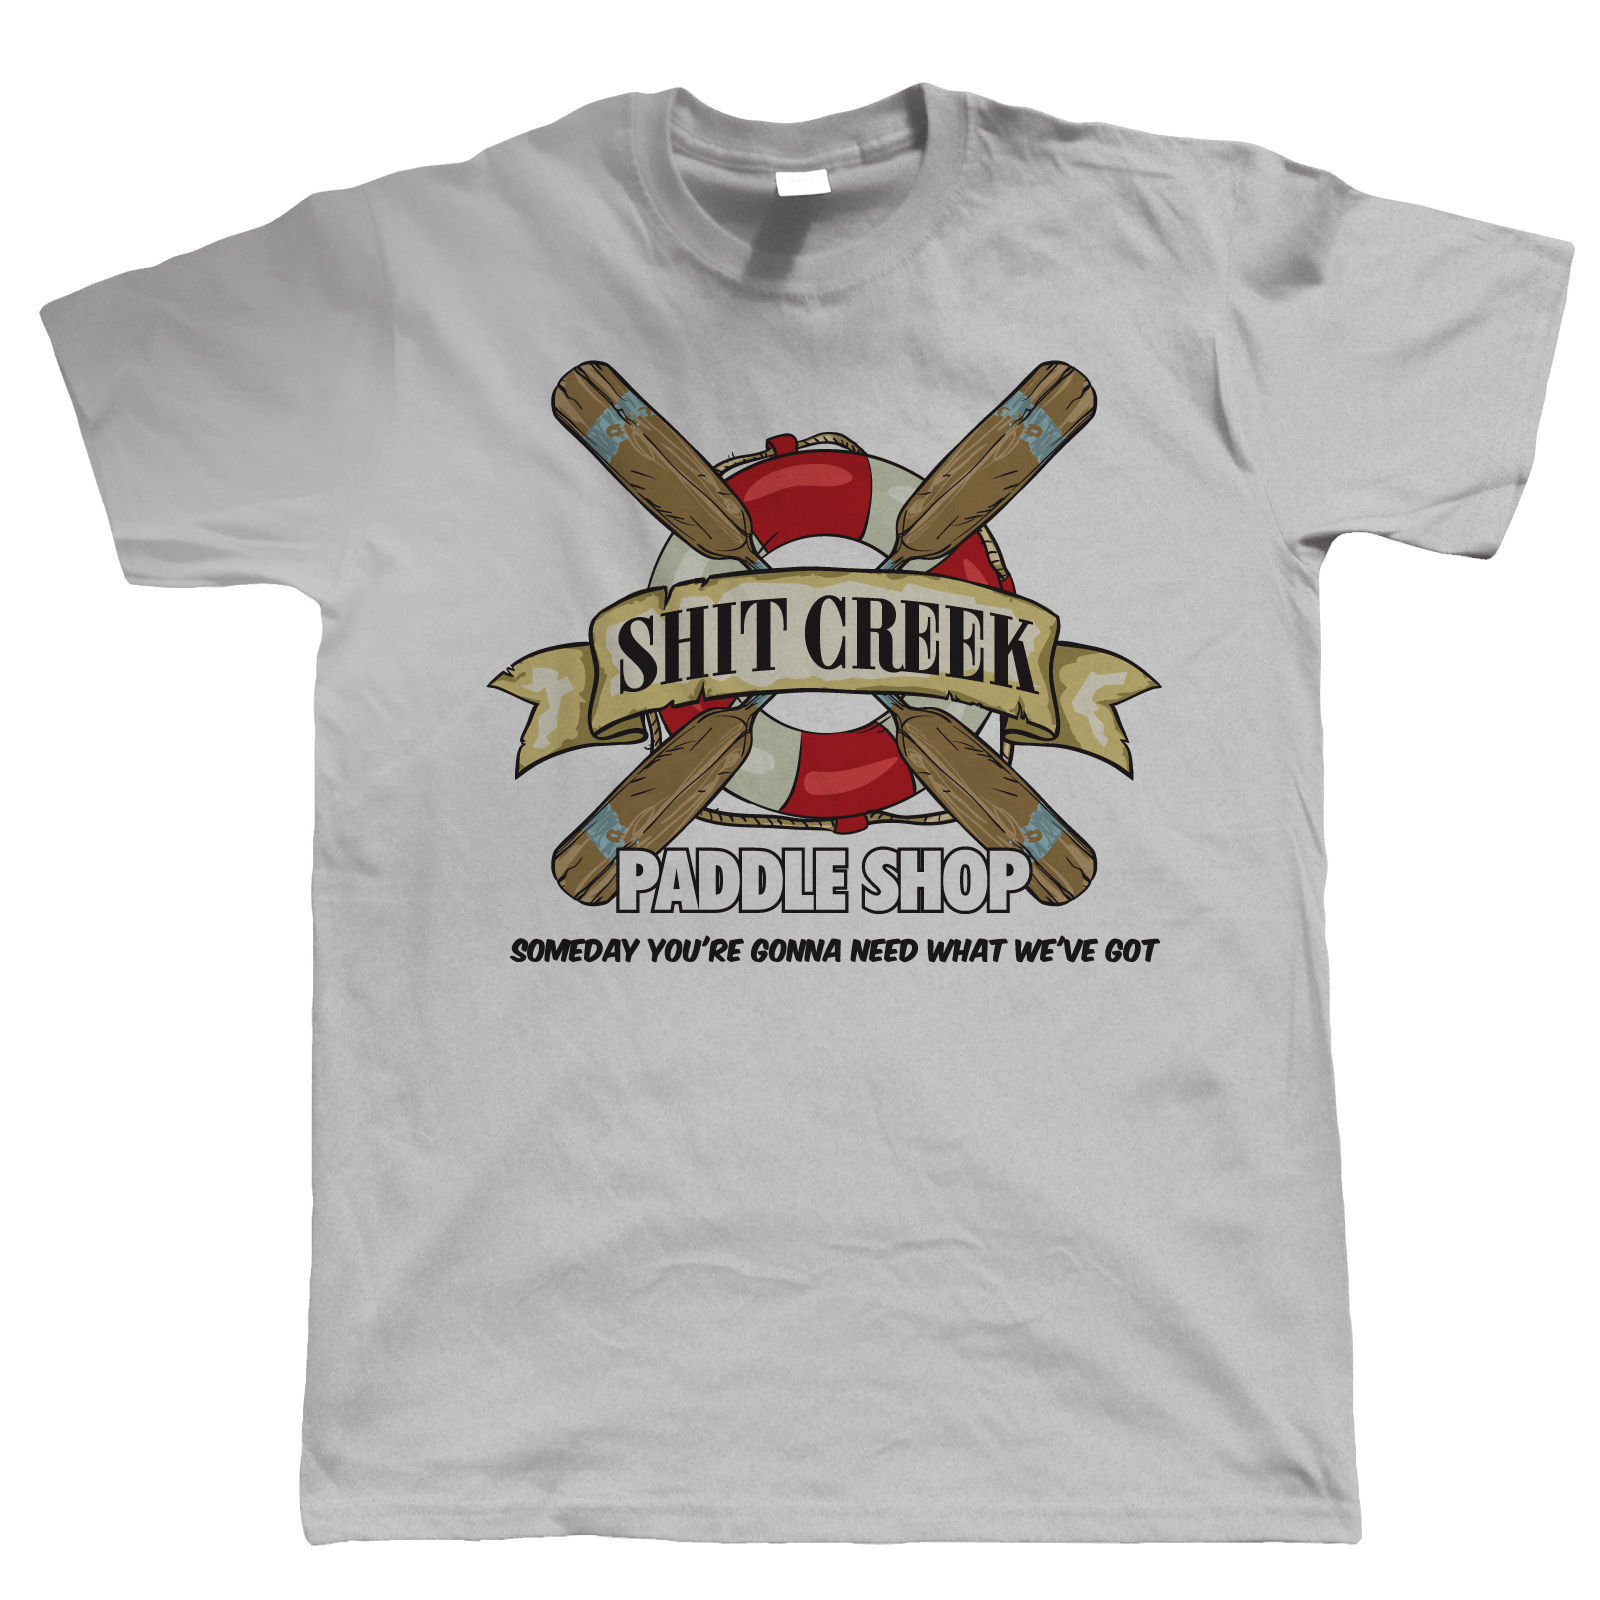 ShitCreek Paddle Shop Funny Canoeing Kayaking T Shirt Gift for Dad Him New T Shirts Funny Tops Tee New Unisex Funny Tops